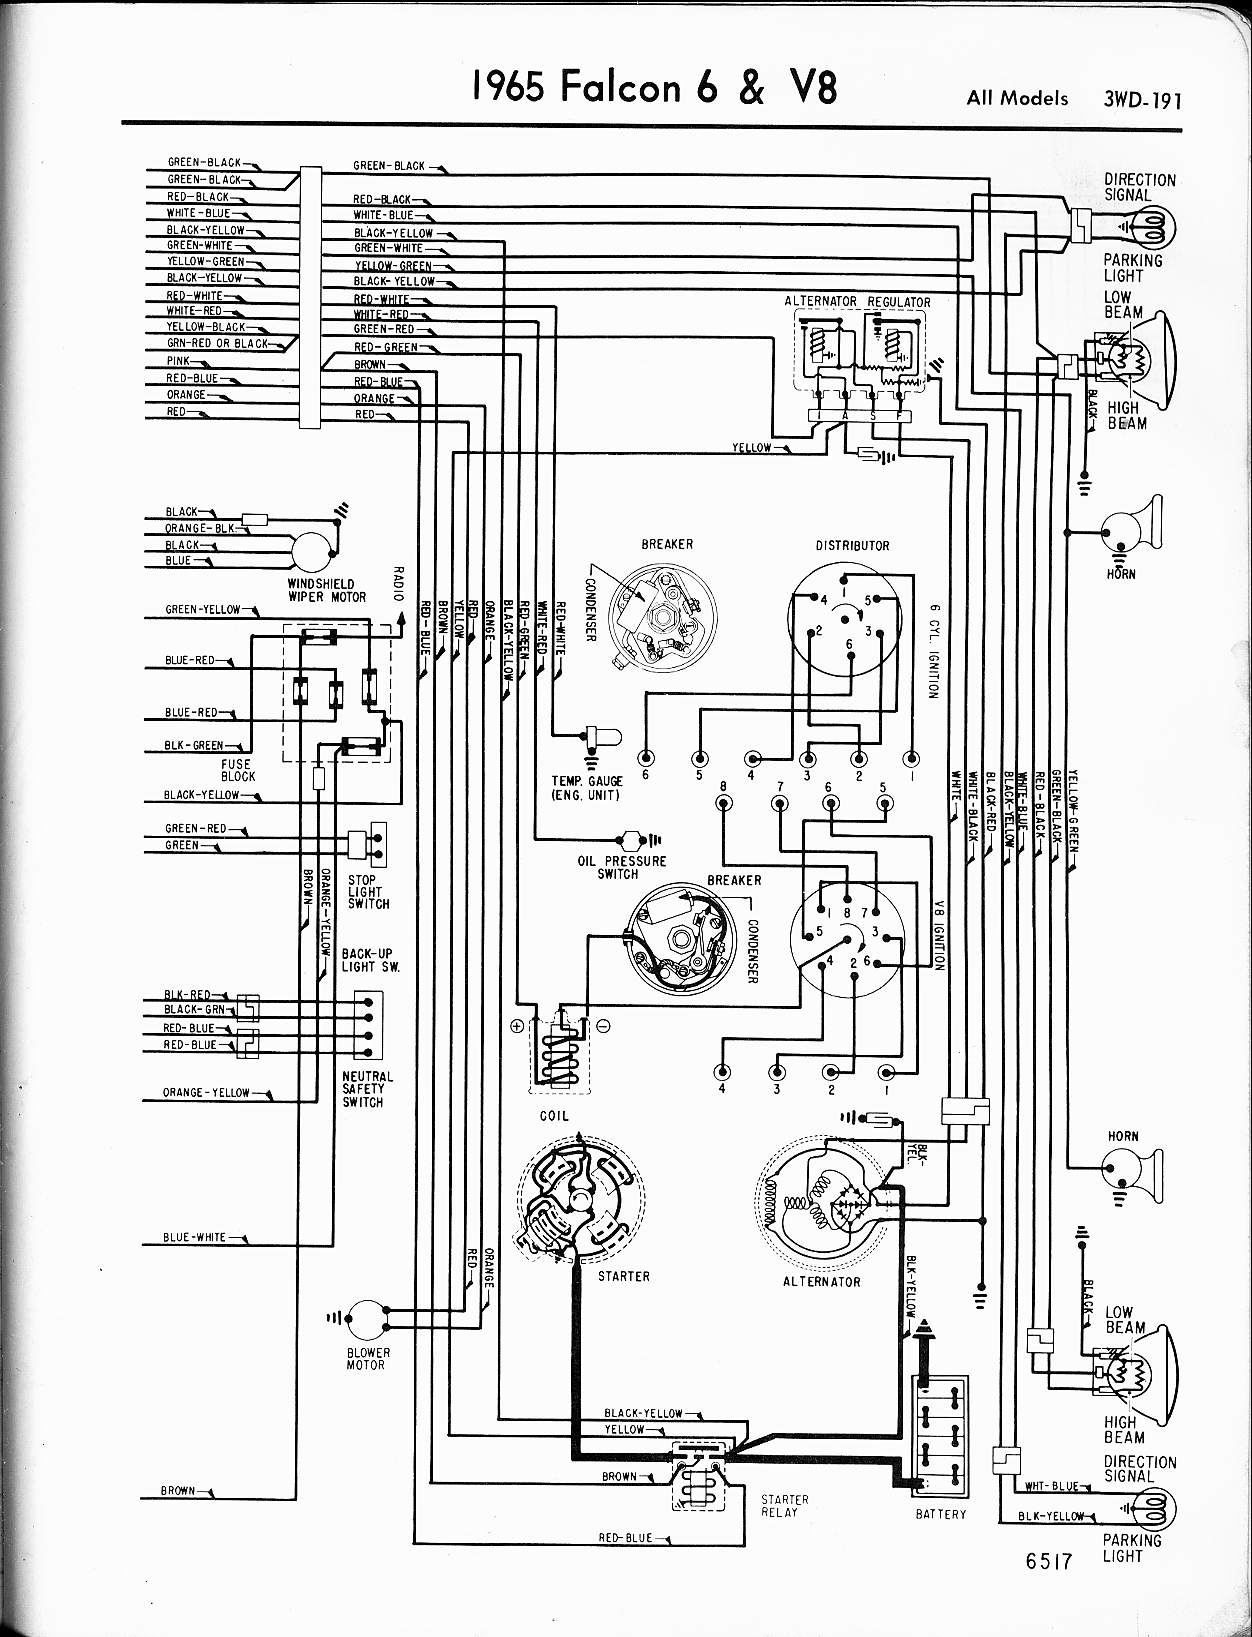 73 f100 wiring diagram 73 f100 parts wiring diagram